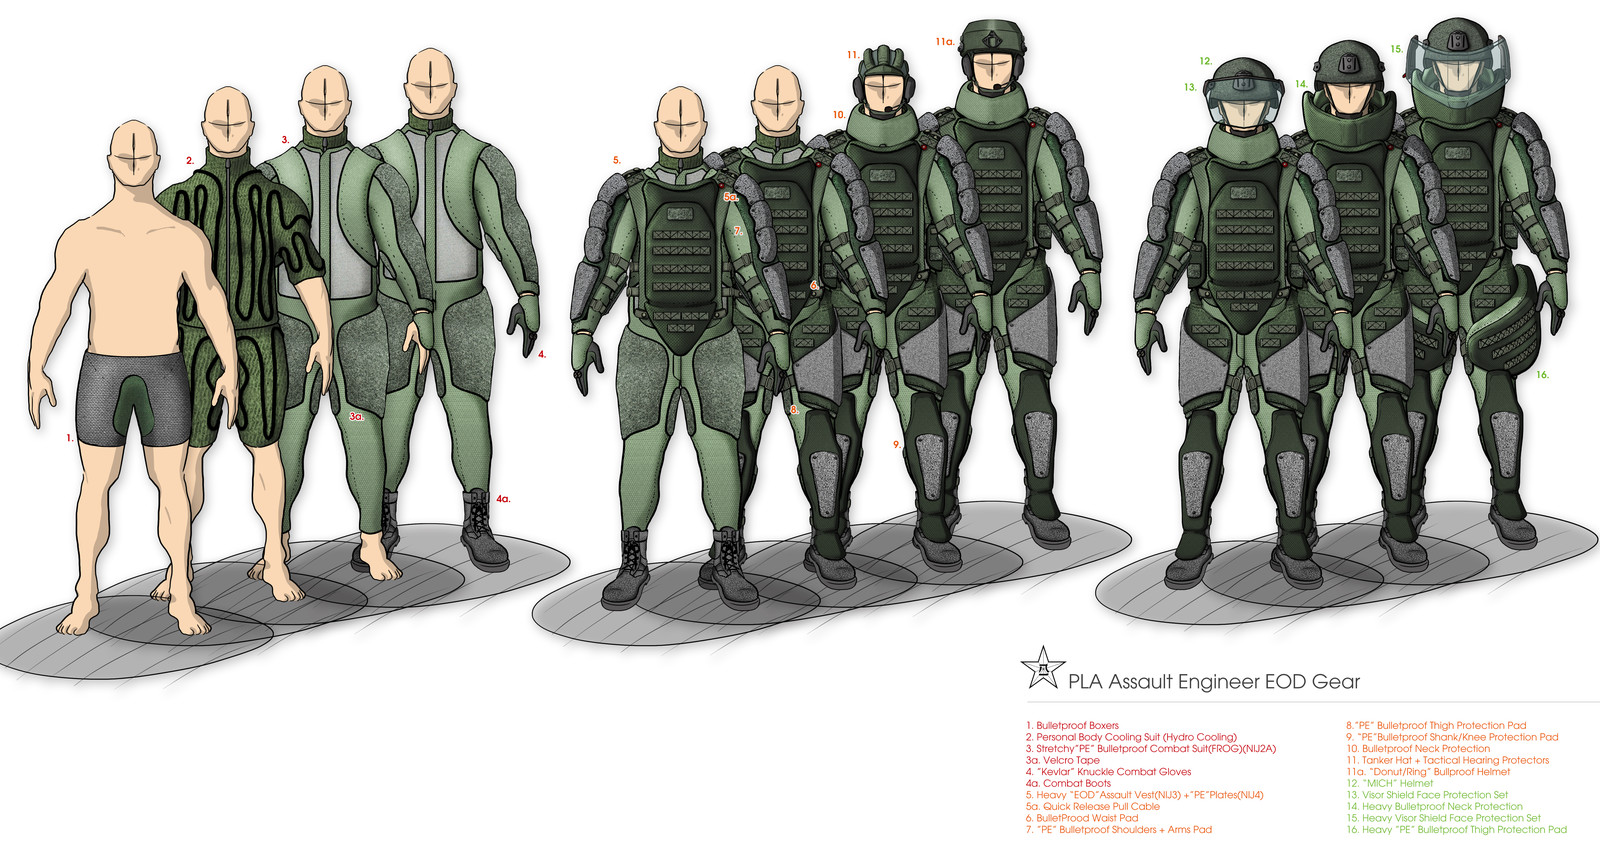 PLA Assault Engineers EOD Gear - Step by Step